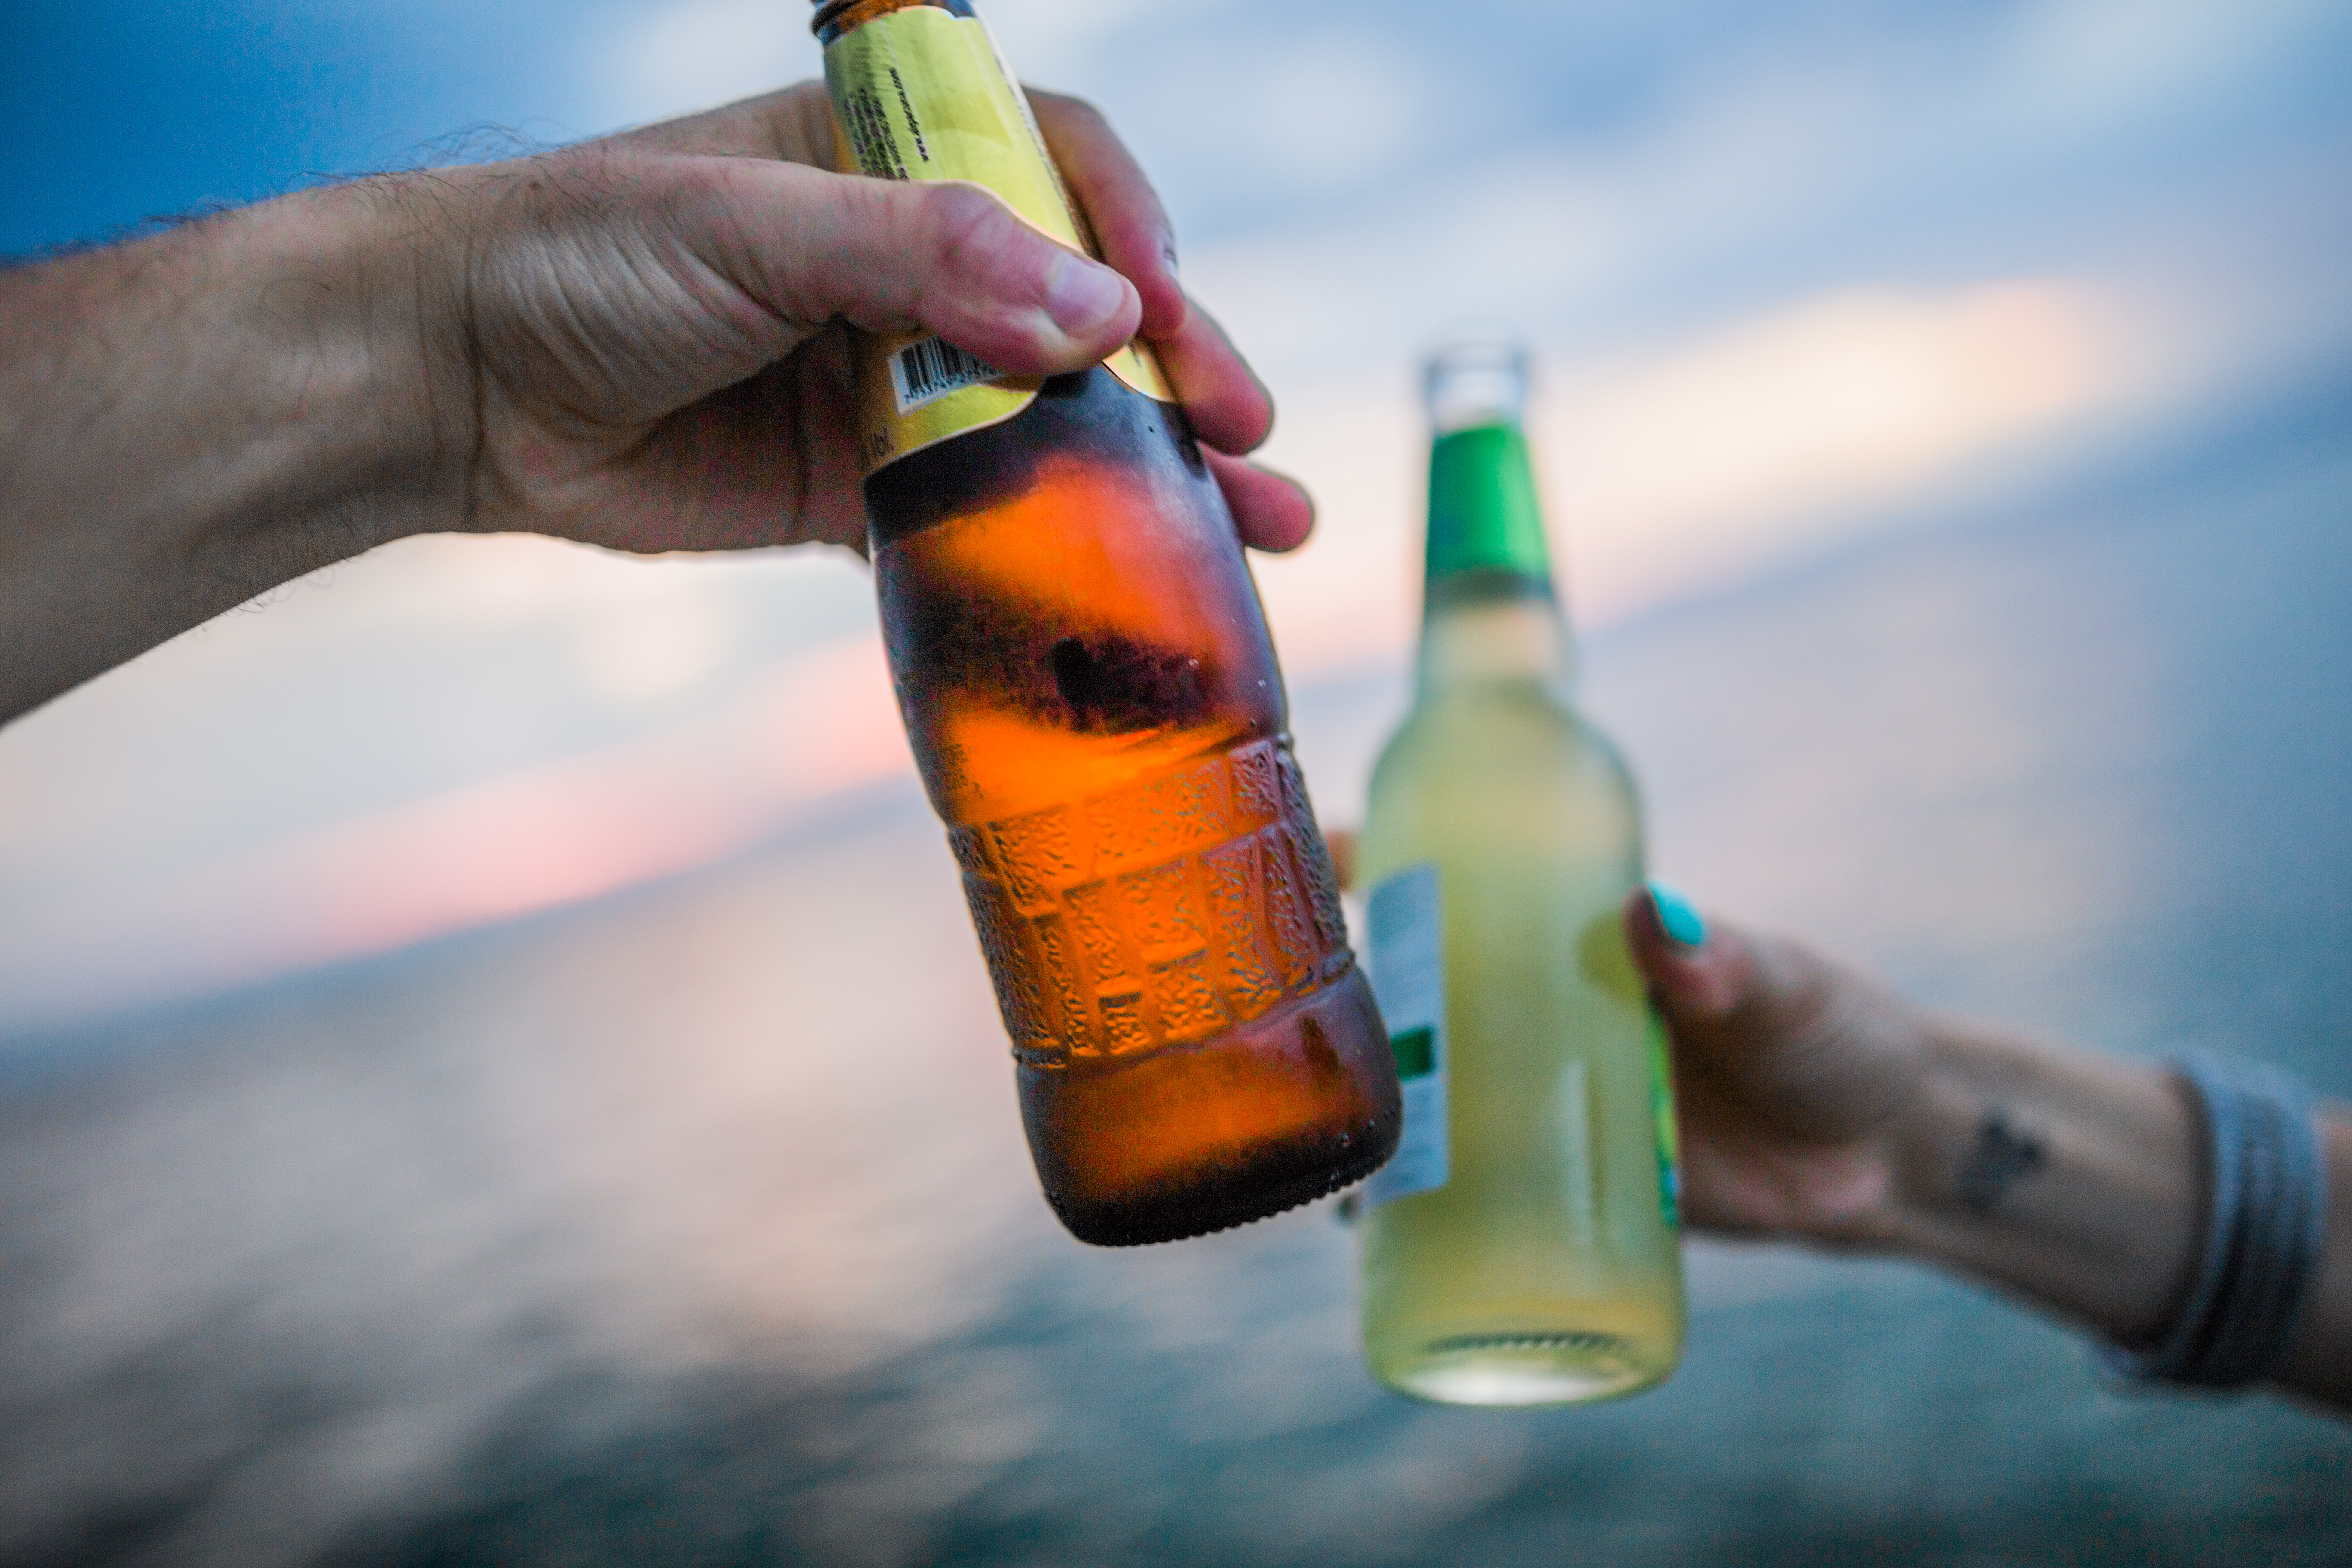 Drinking to belong: Students and low self-esteem.